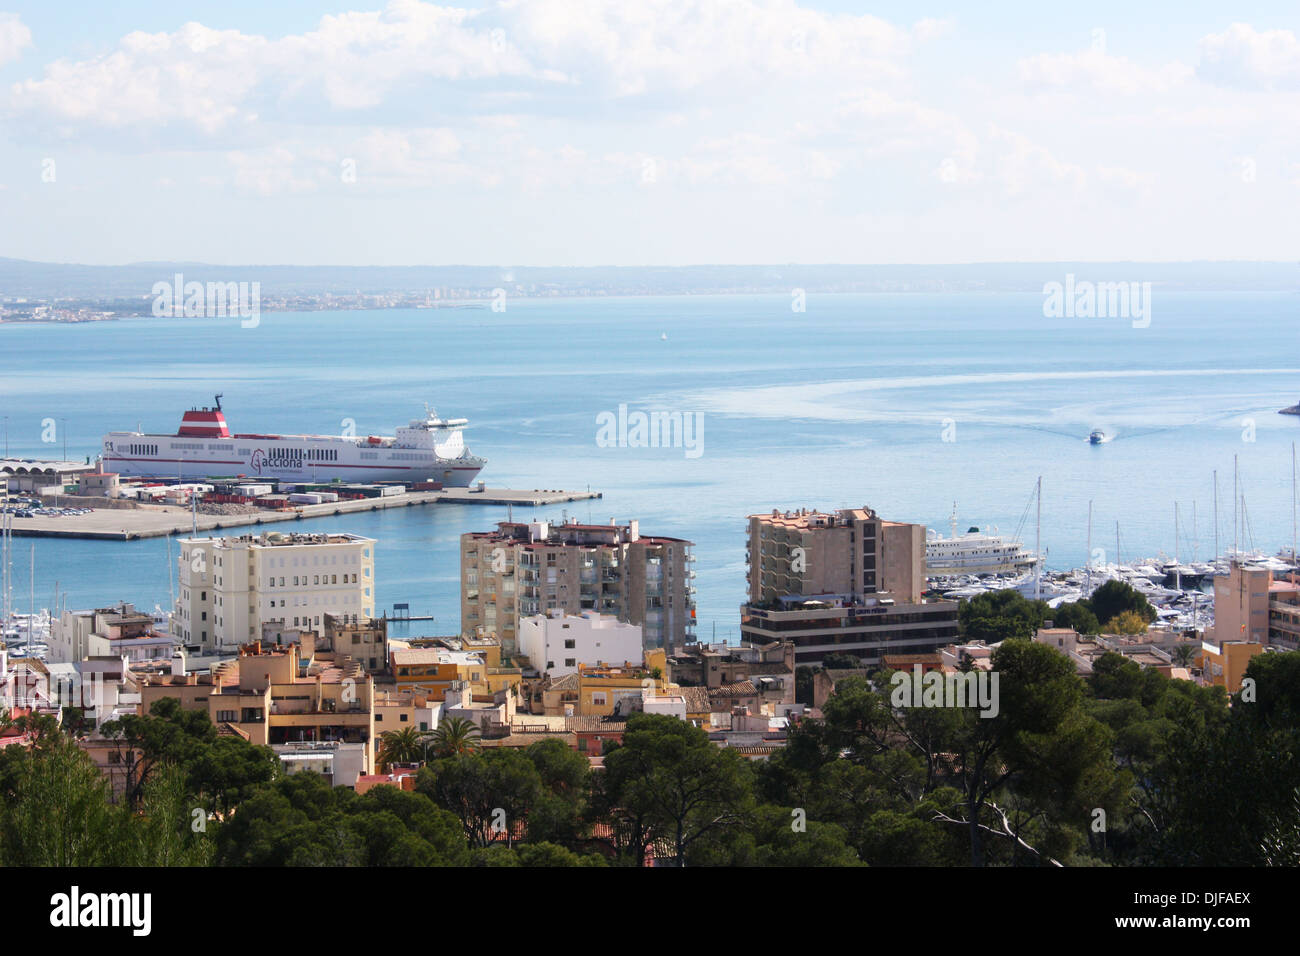 Buildings and seascape with a ferry in Majorca, Spain Stock Photo